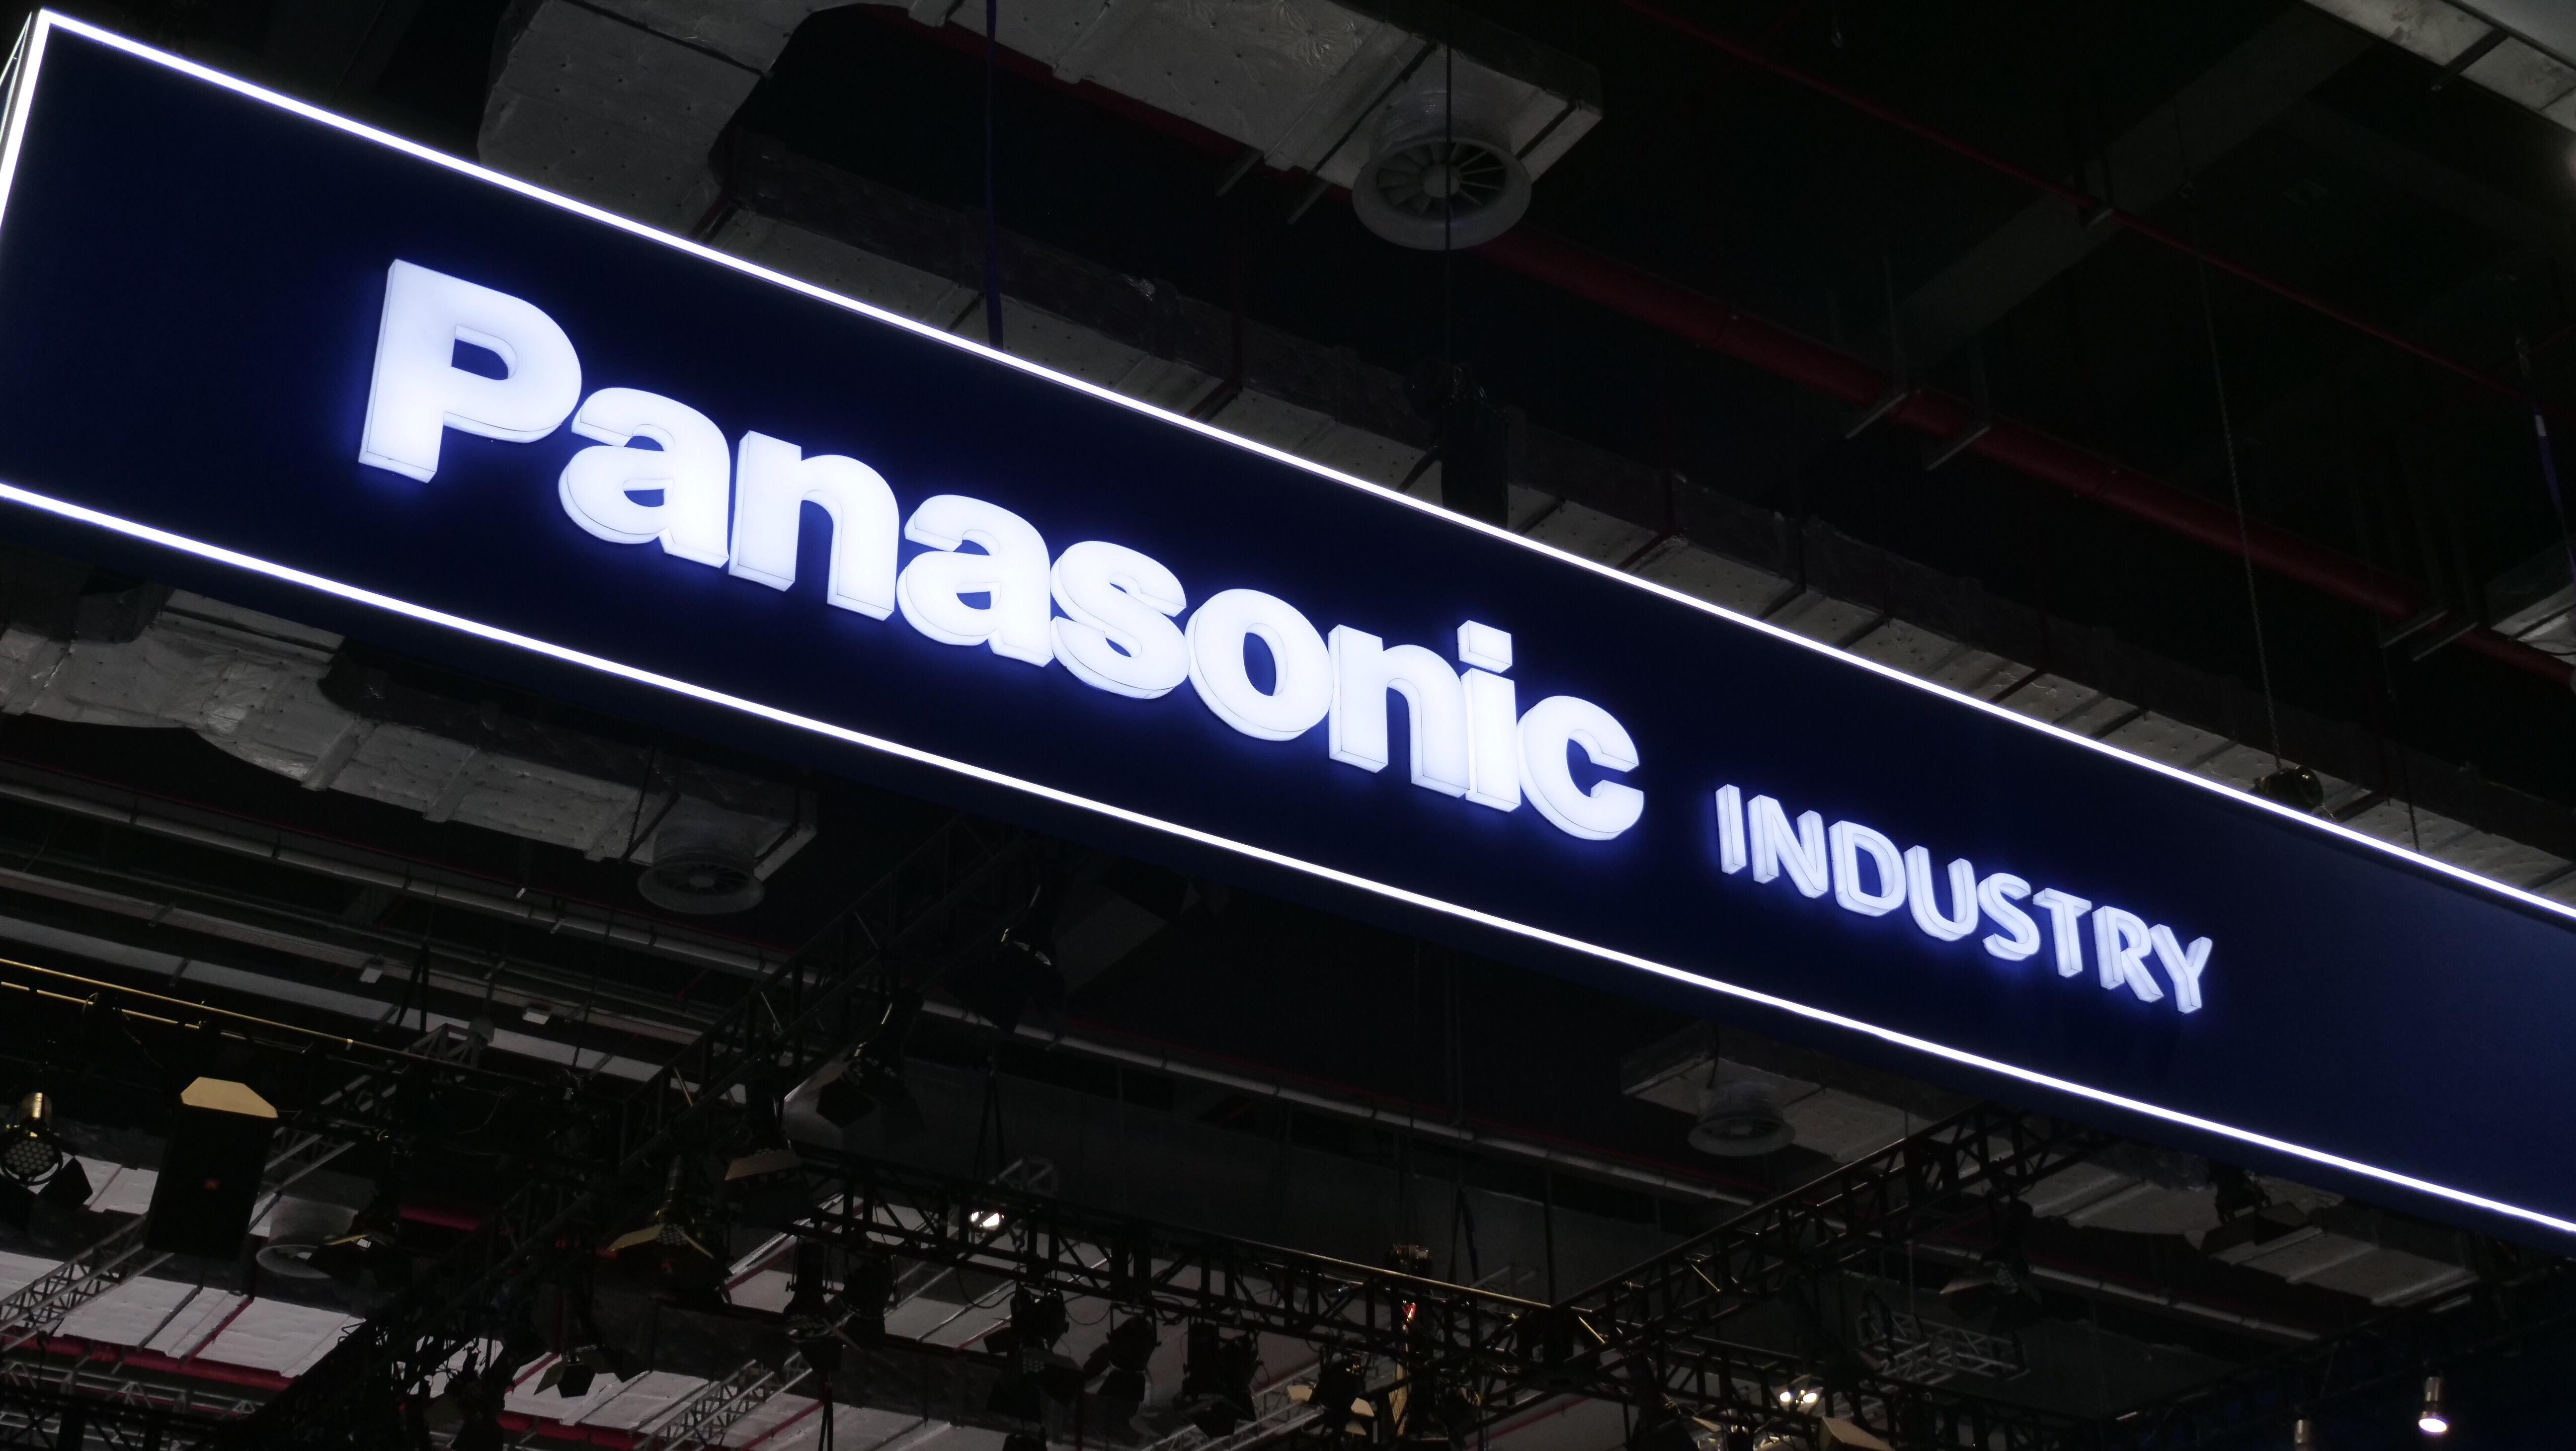 photo: Panasonic also introduced its device business brand